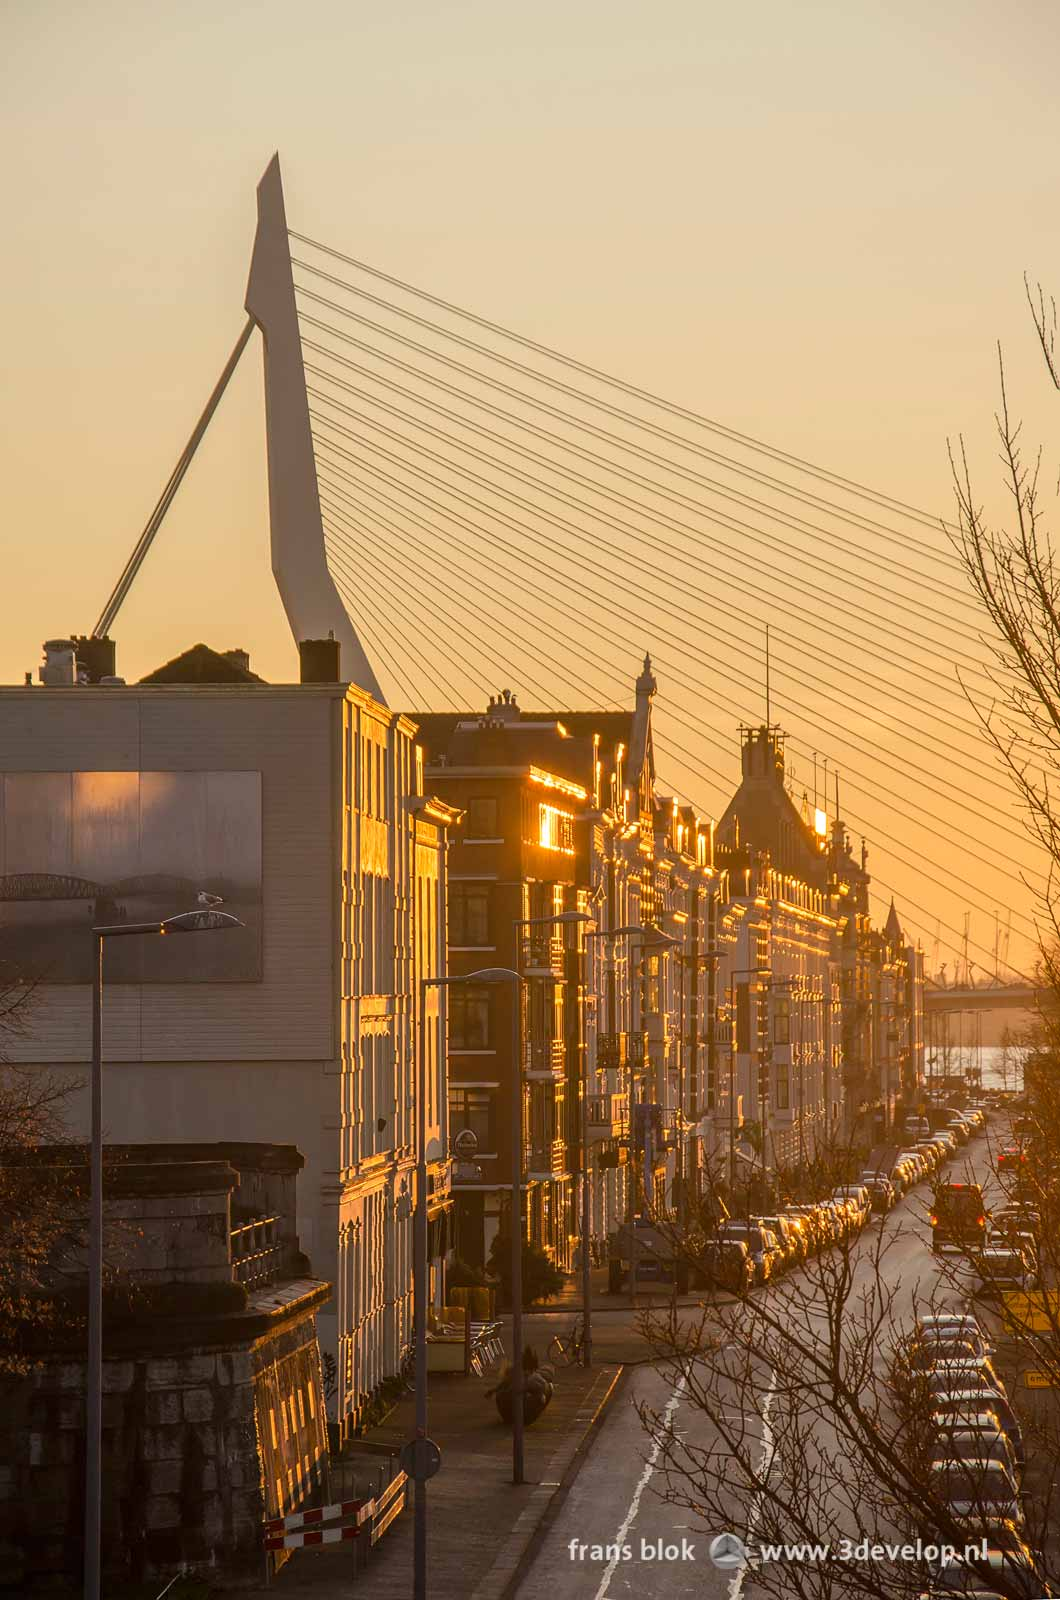 The northern quay of Noordereiland (North Island) in Rotterdam, with erasmus bridge in the background, captured by the light of the setting sun.